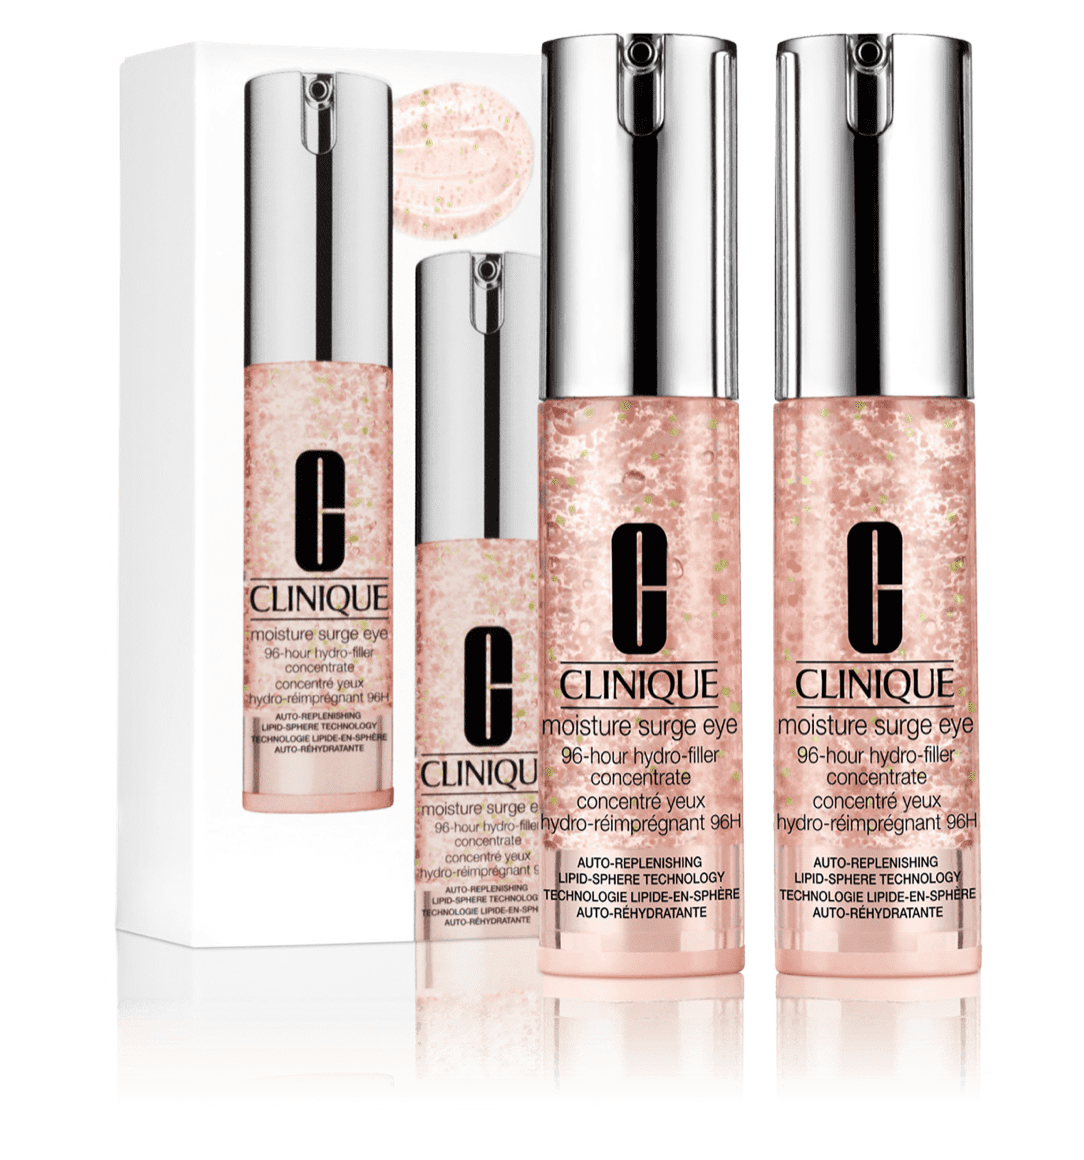 Clinique: 50% off Moisture Surge Eye Concentrate Duo.